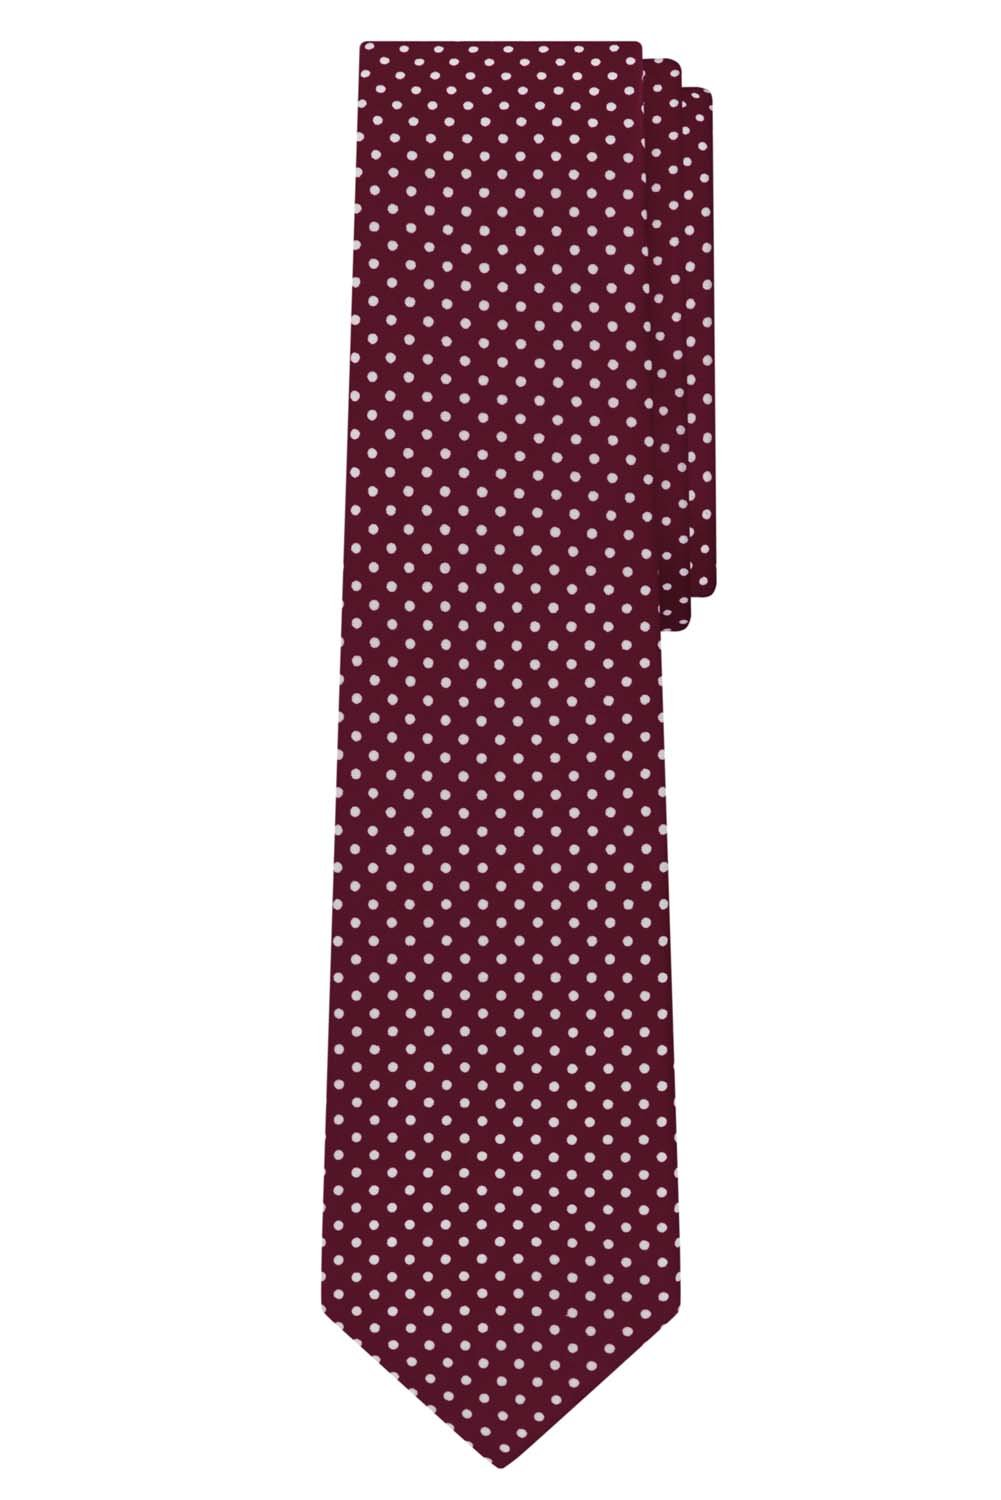 108bc3c82f58 Get Quotations · Jacob Alexander Polka Dot Print Boys Regular Polka Dotted  Tie